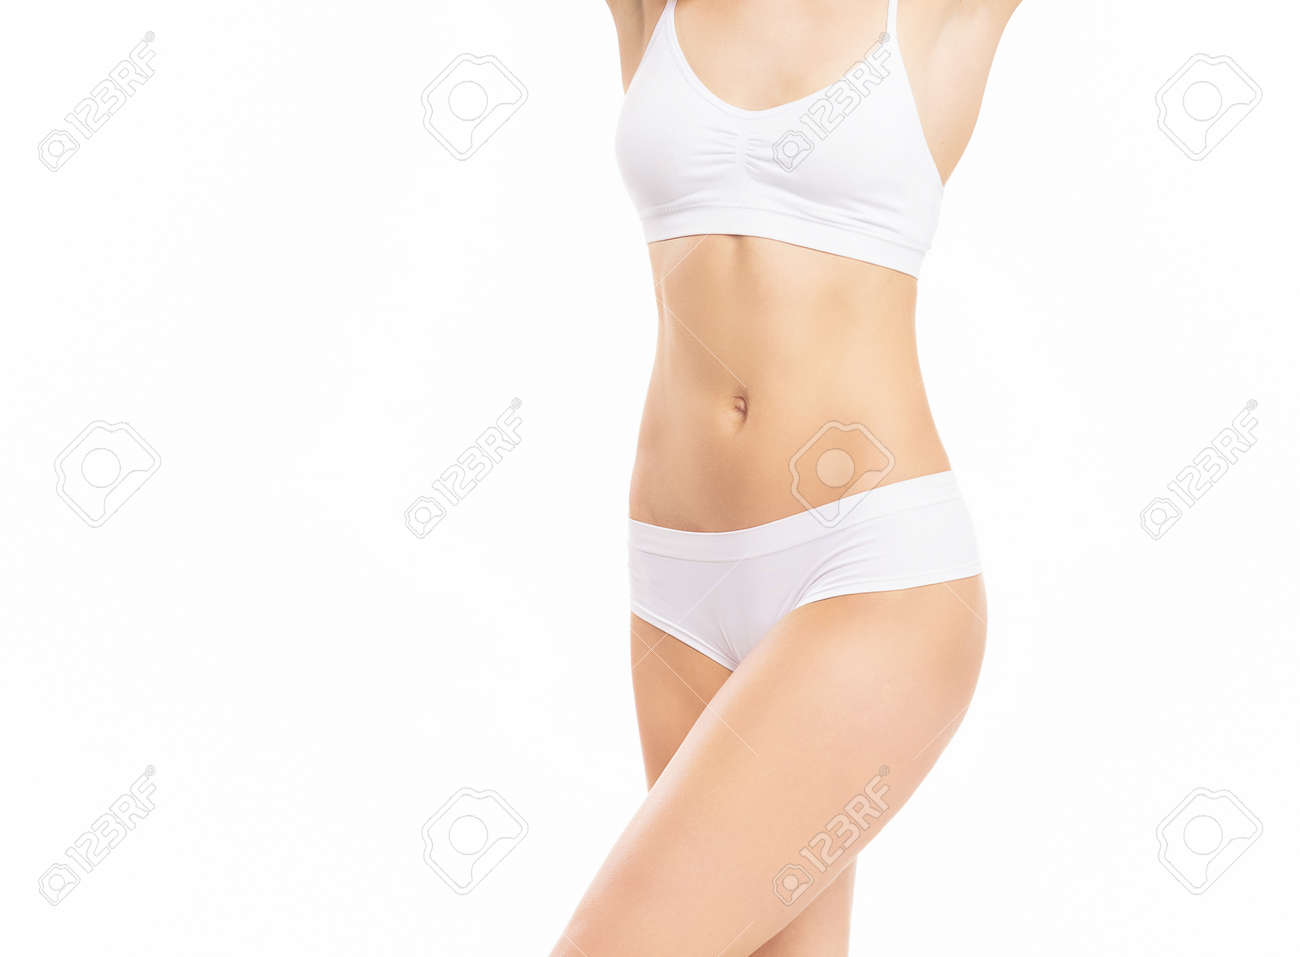 Close-up of a beautiful and fit female figure. Studio photo of young womans body in swimsuit. - 167688412